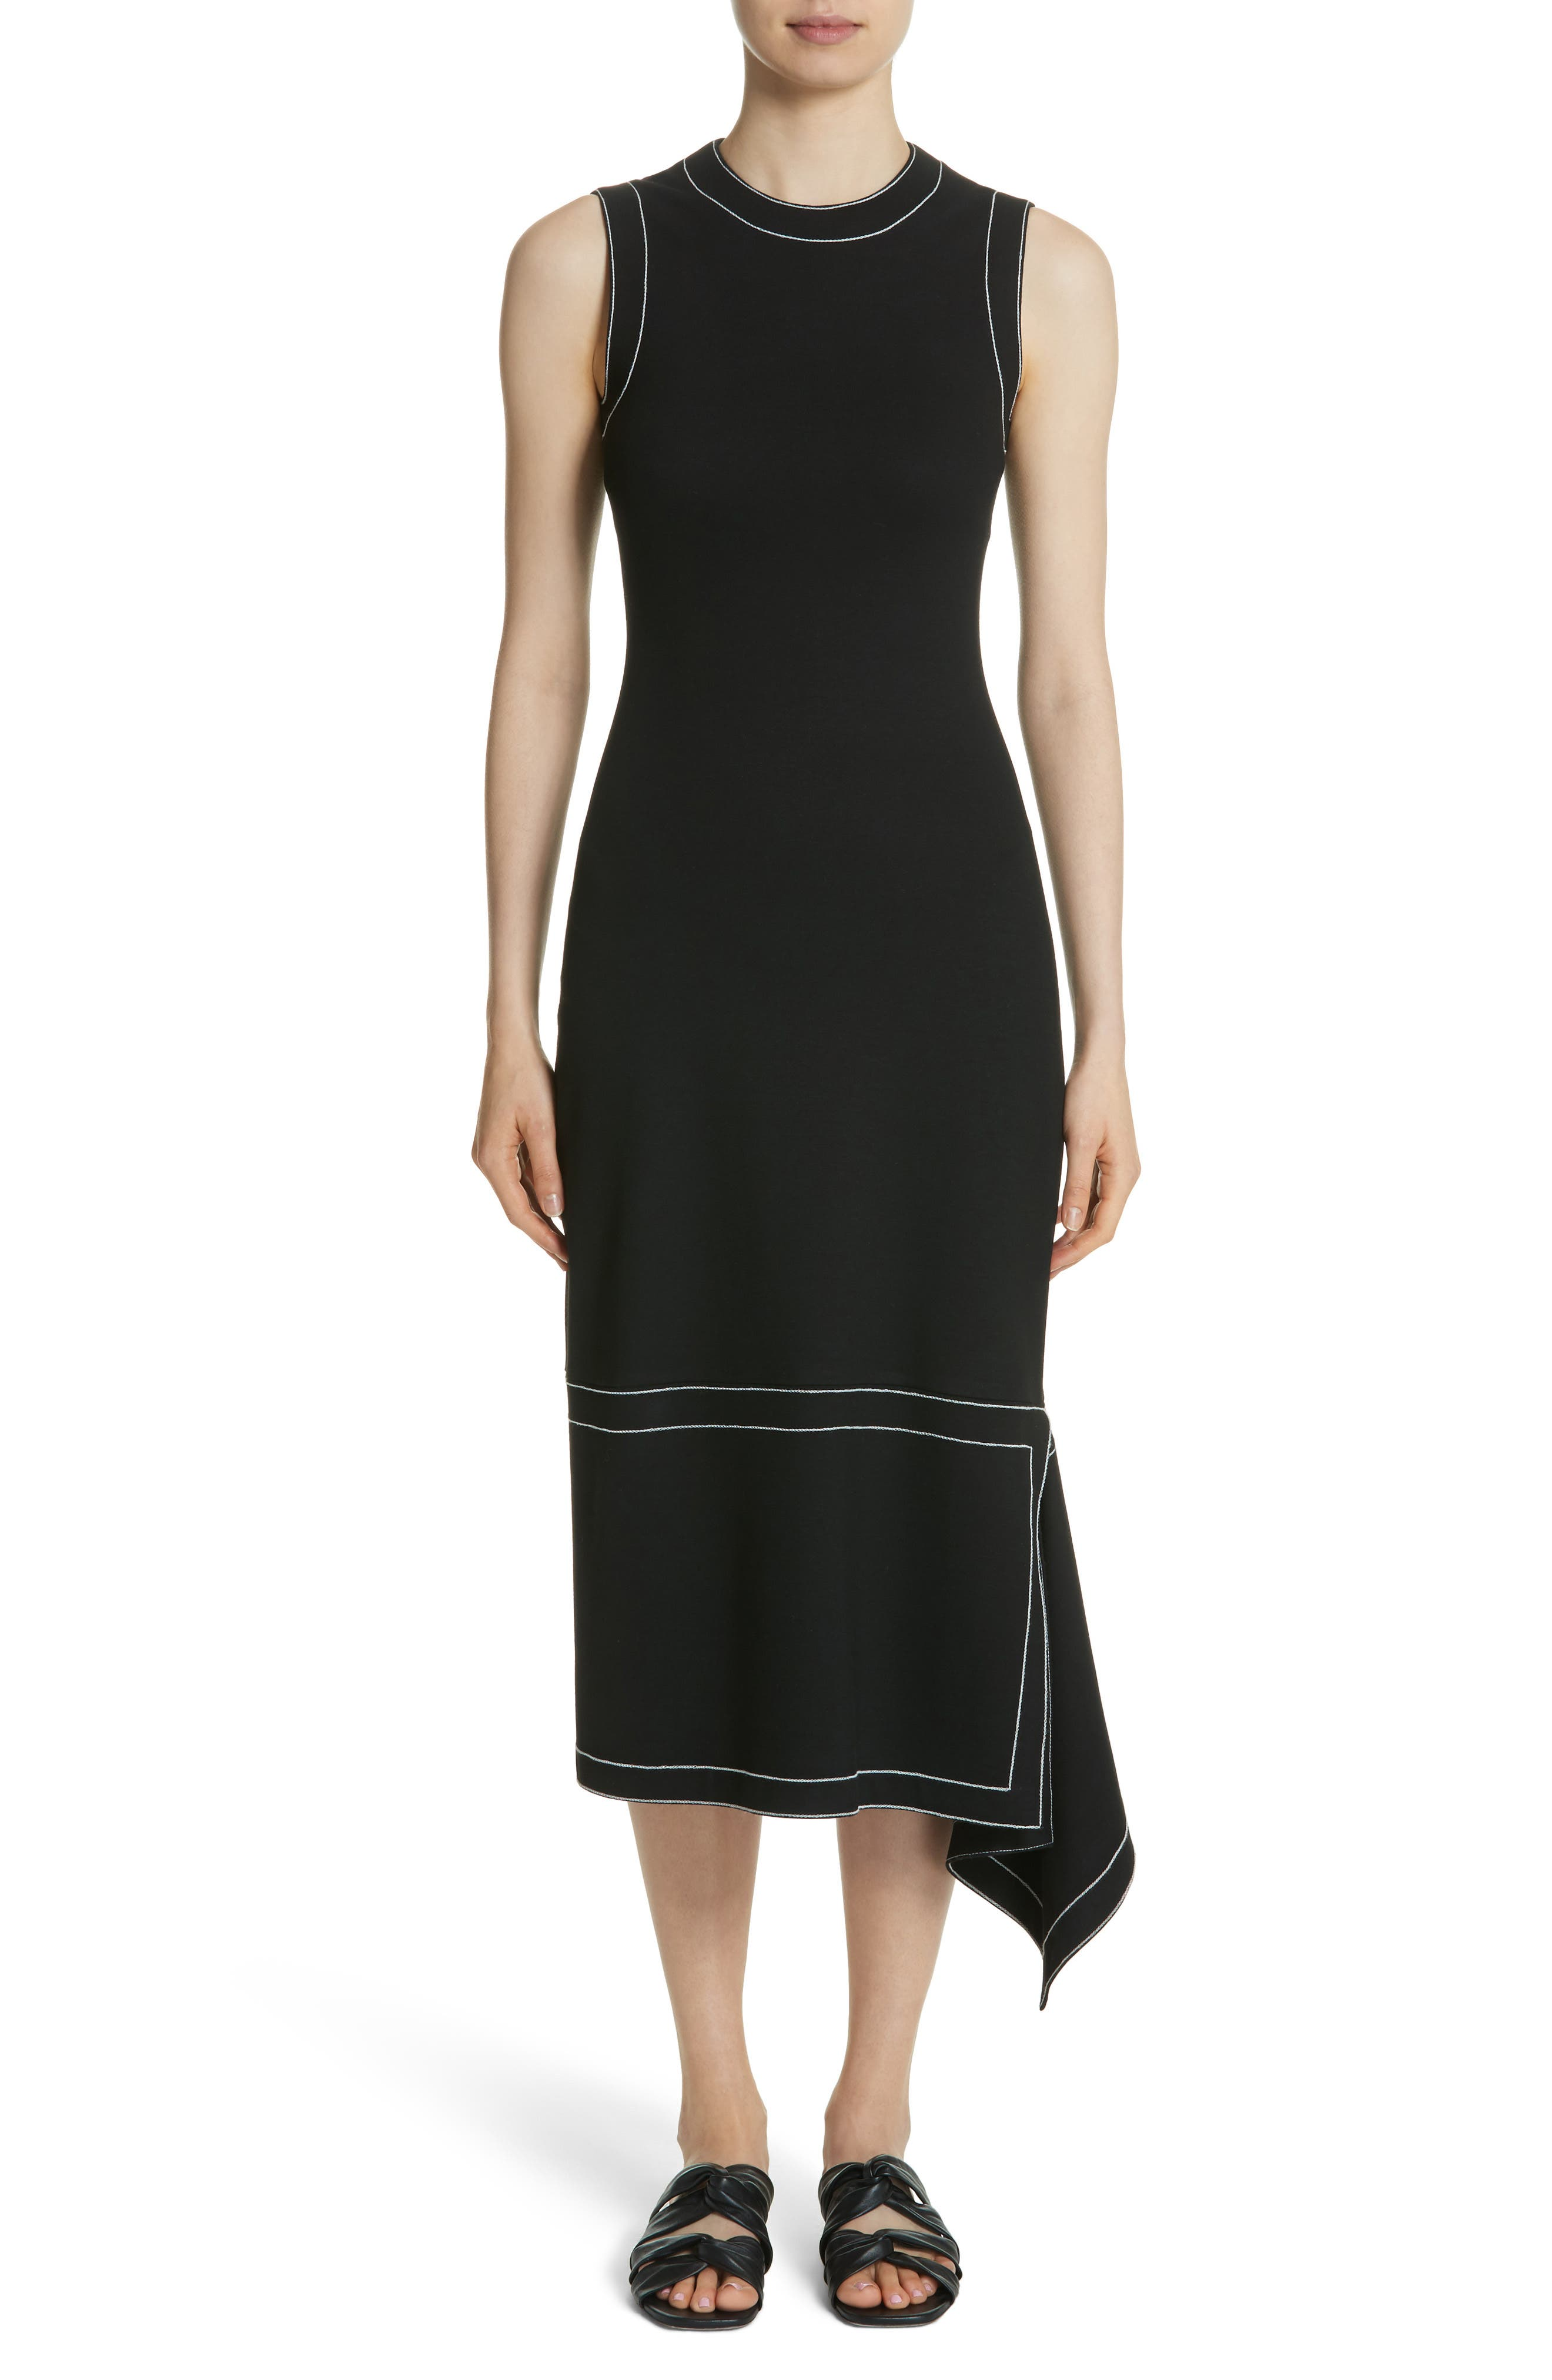 Rosetta Getta Asymmetrical Contrast Stitch Dress